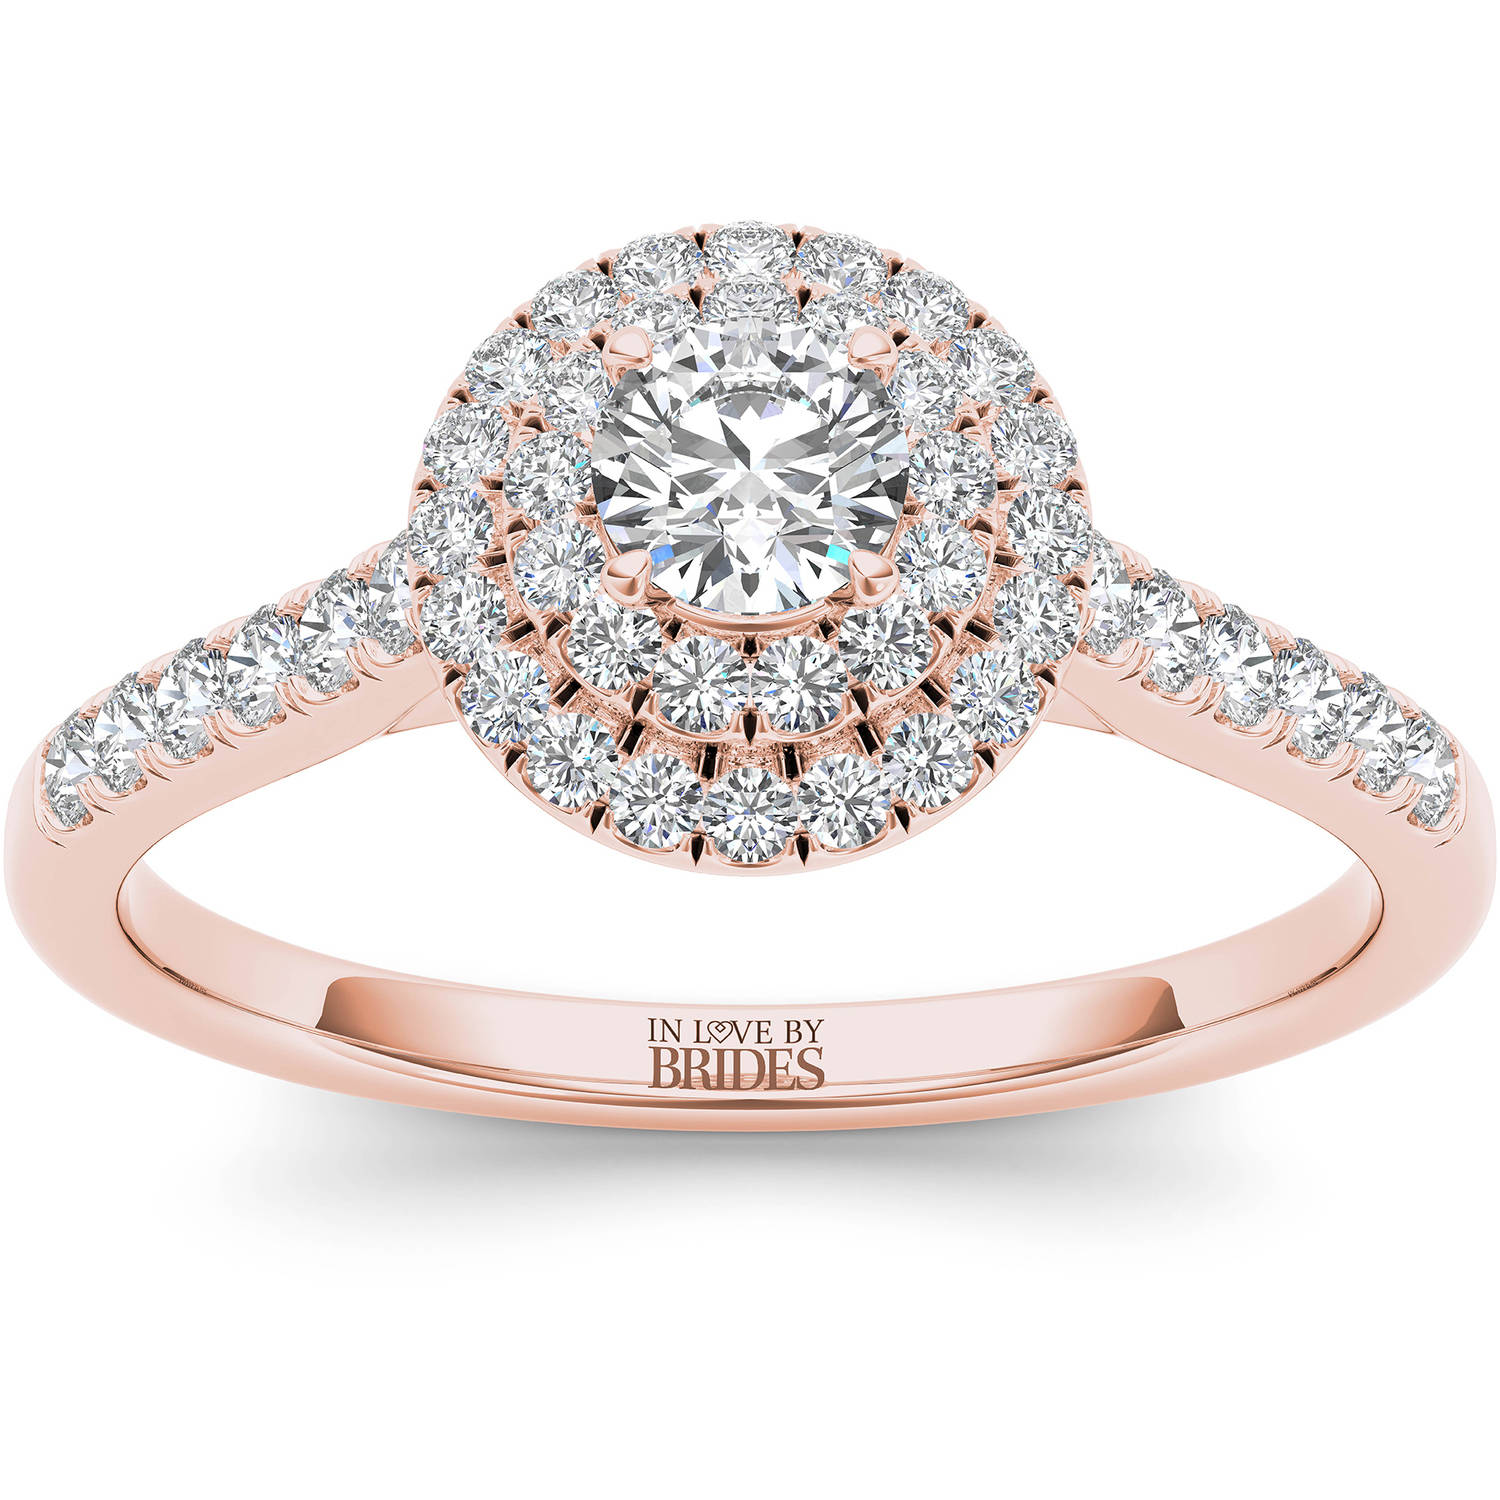 IN LOVE BY BRIDES 1/2 Carat T.W. Certified Diamond Classic Halo 14kt Pink Gold Engagement Ring